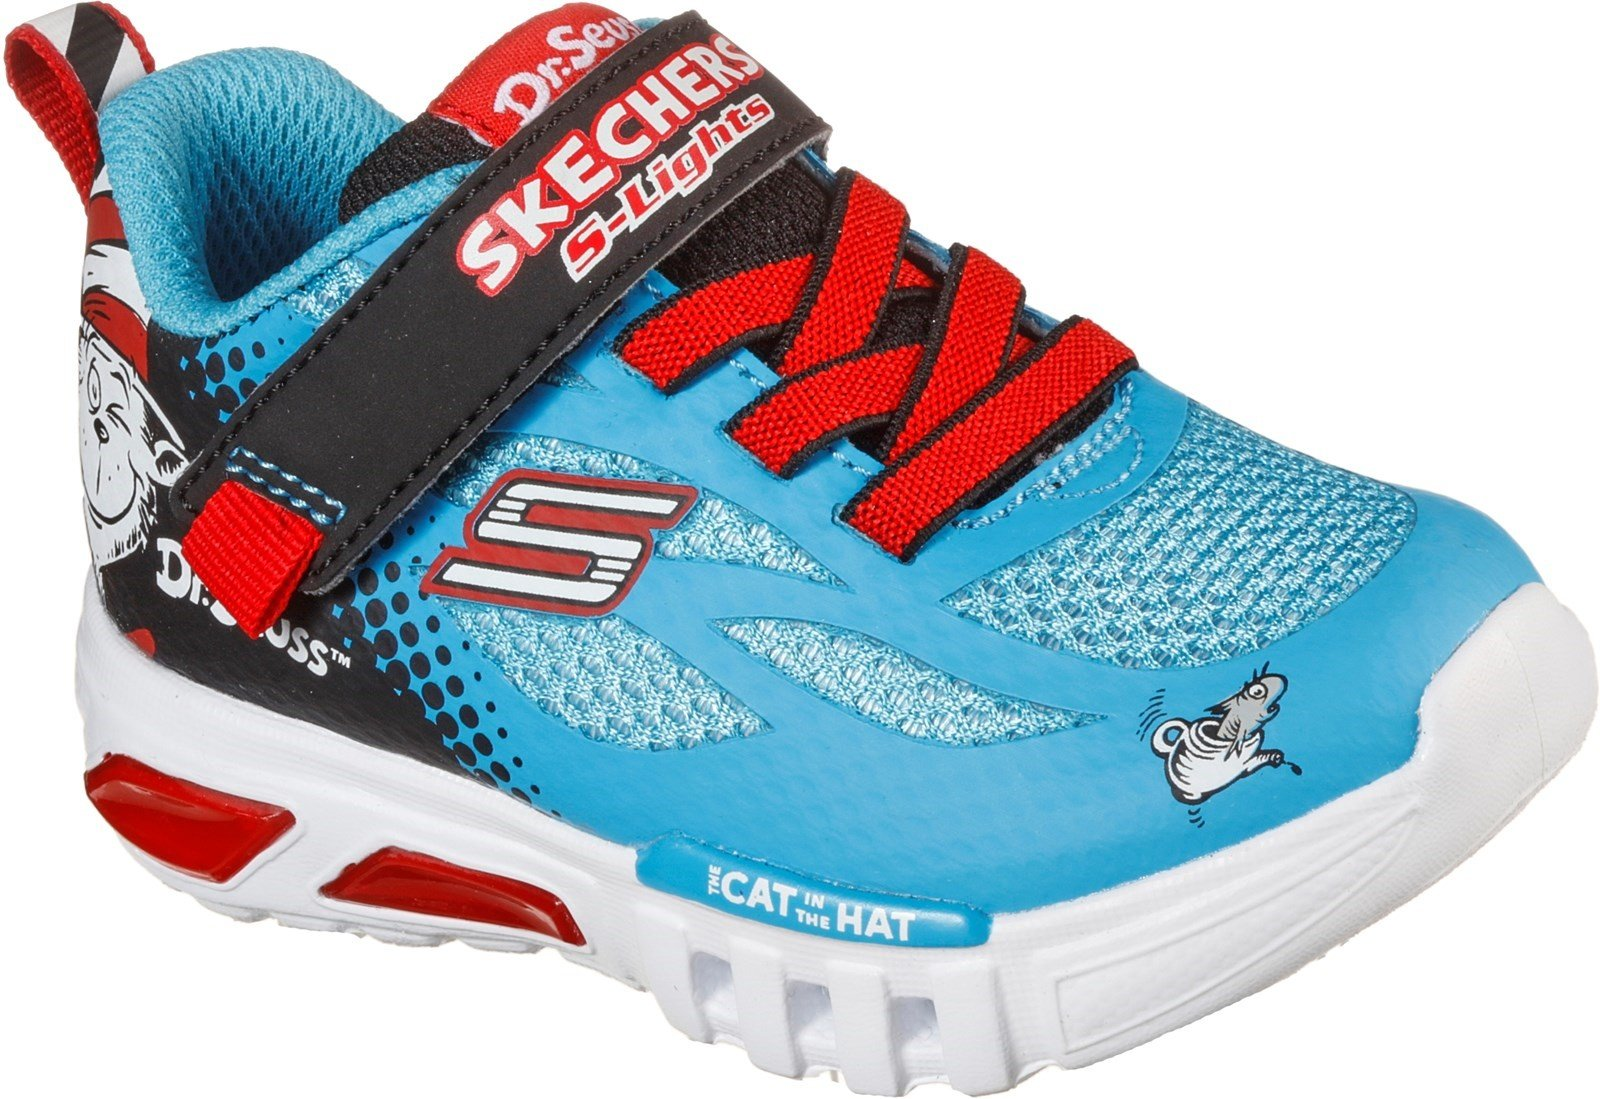 Skechers Kid's Flex-Glow Lighted Things Sports Trainer Multicolor 32086 - Blue/Black 4